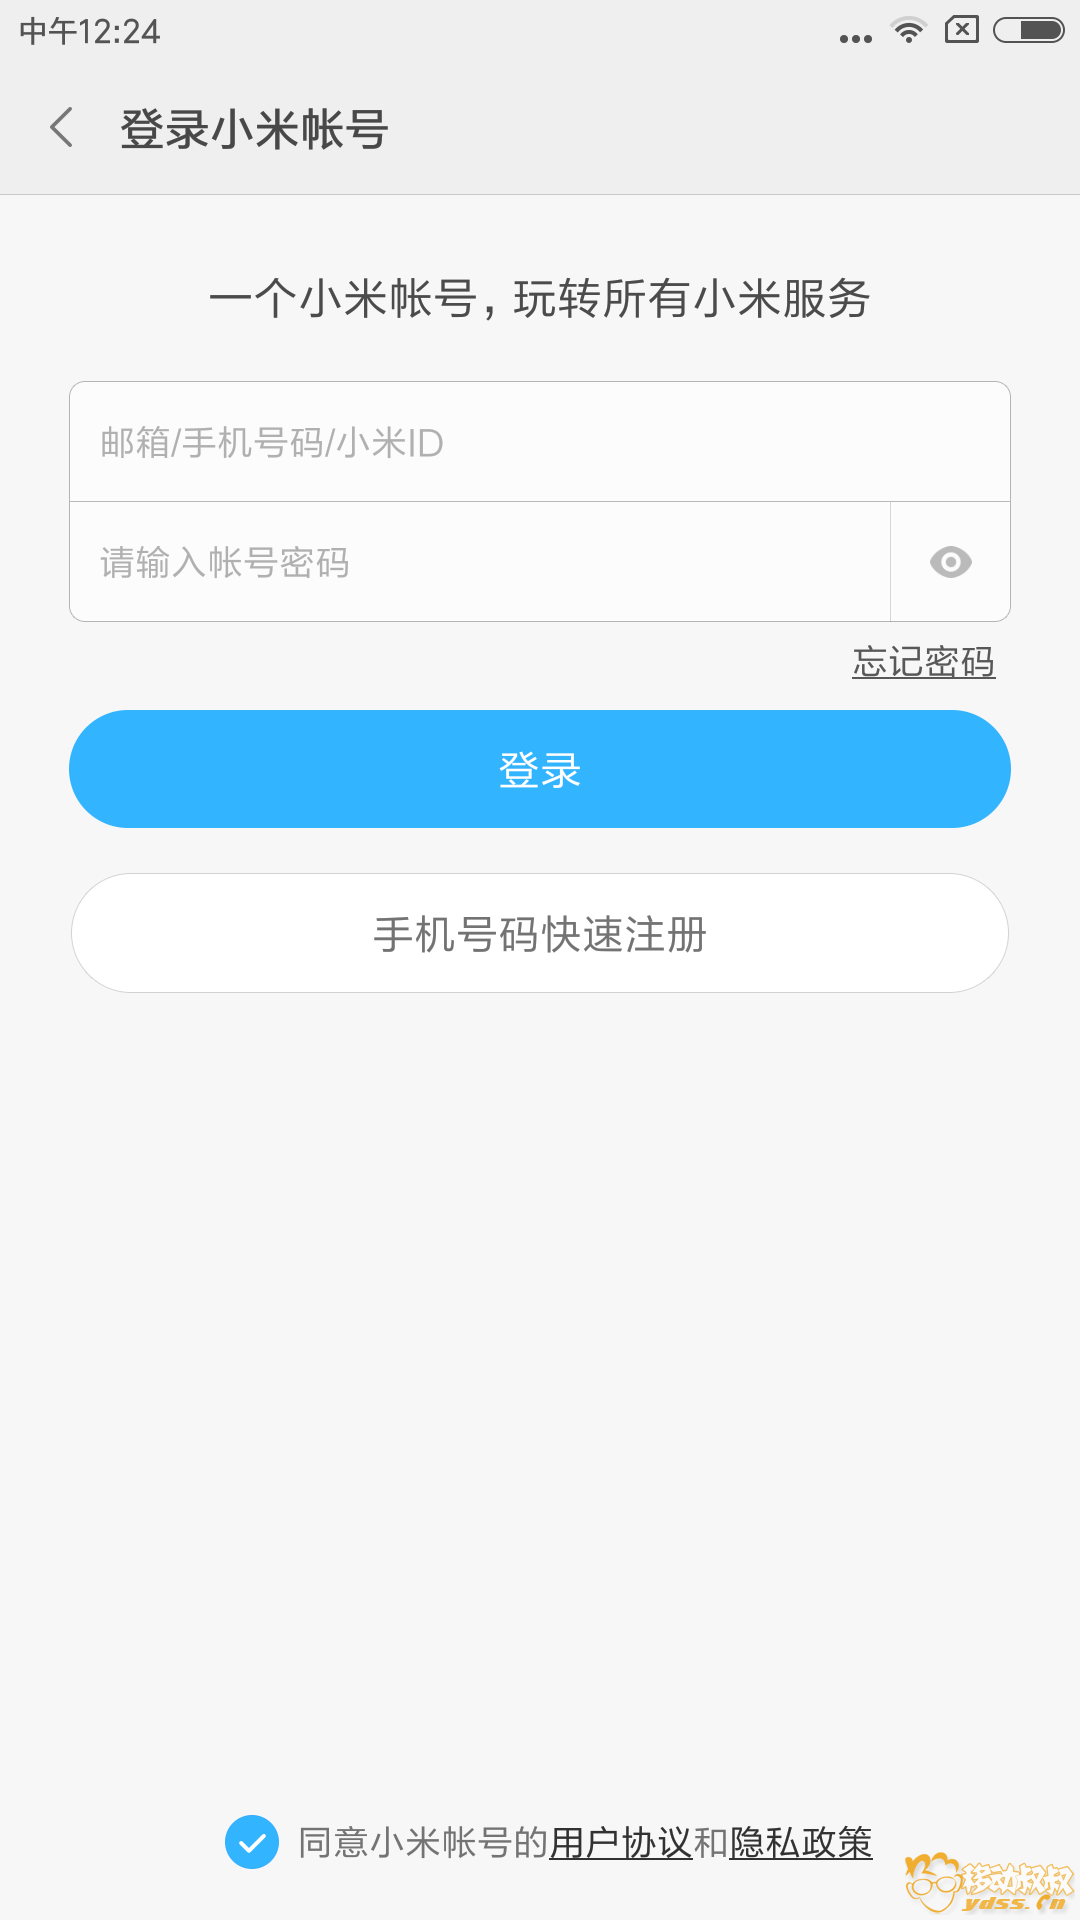 Screenshot_2017-06-18-12-24-12-085_com.xiaomi.account.png